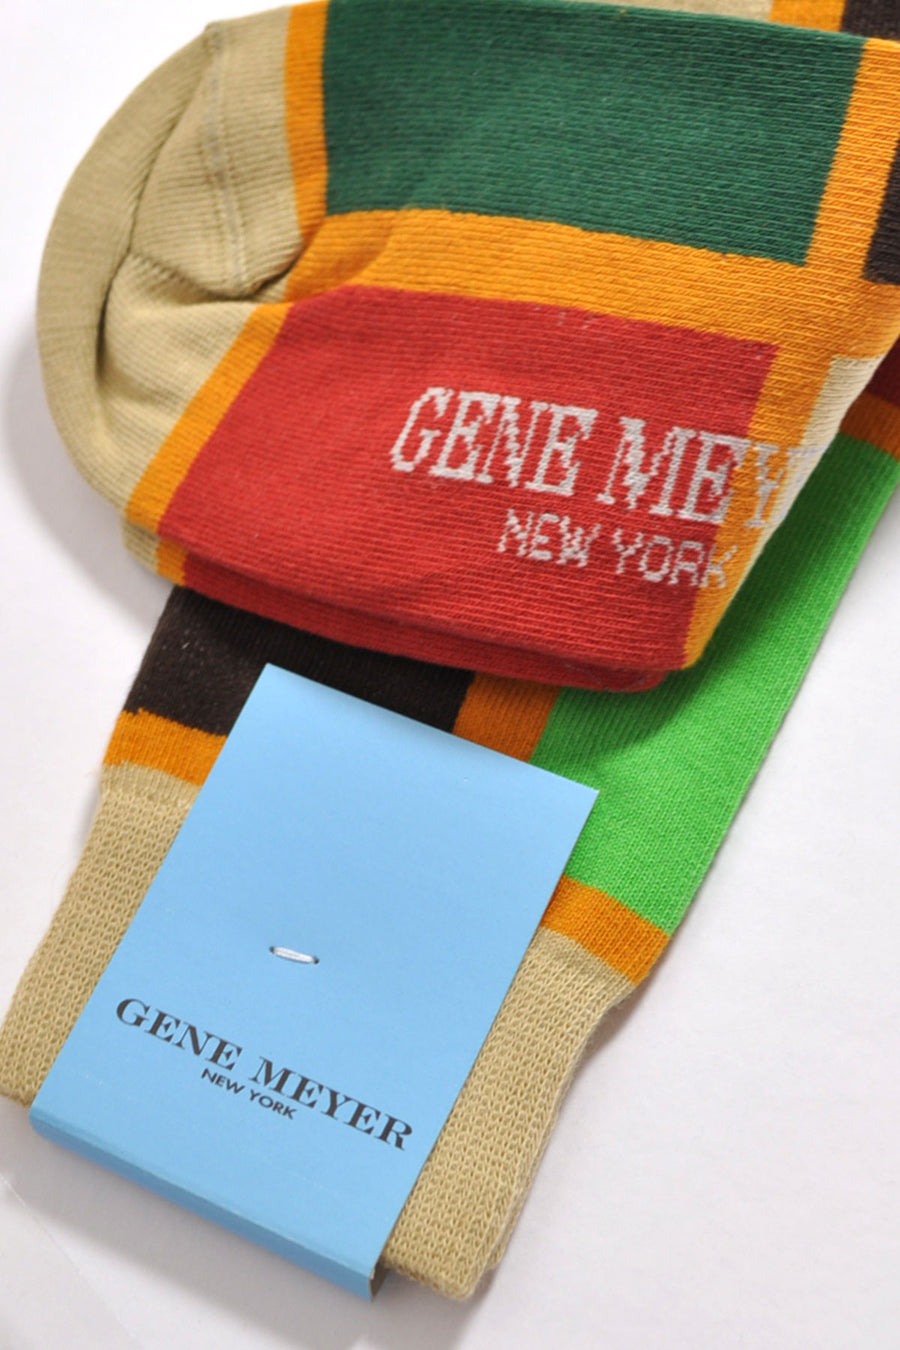 Gene Meyer Socks Red Green Rectangles - Made In Italy